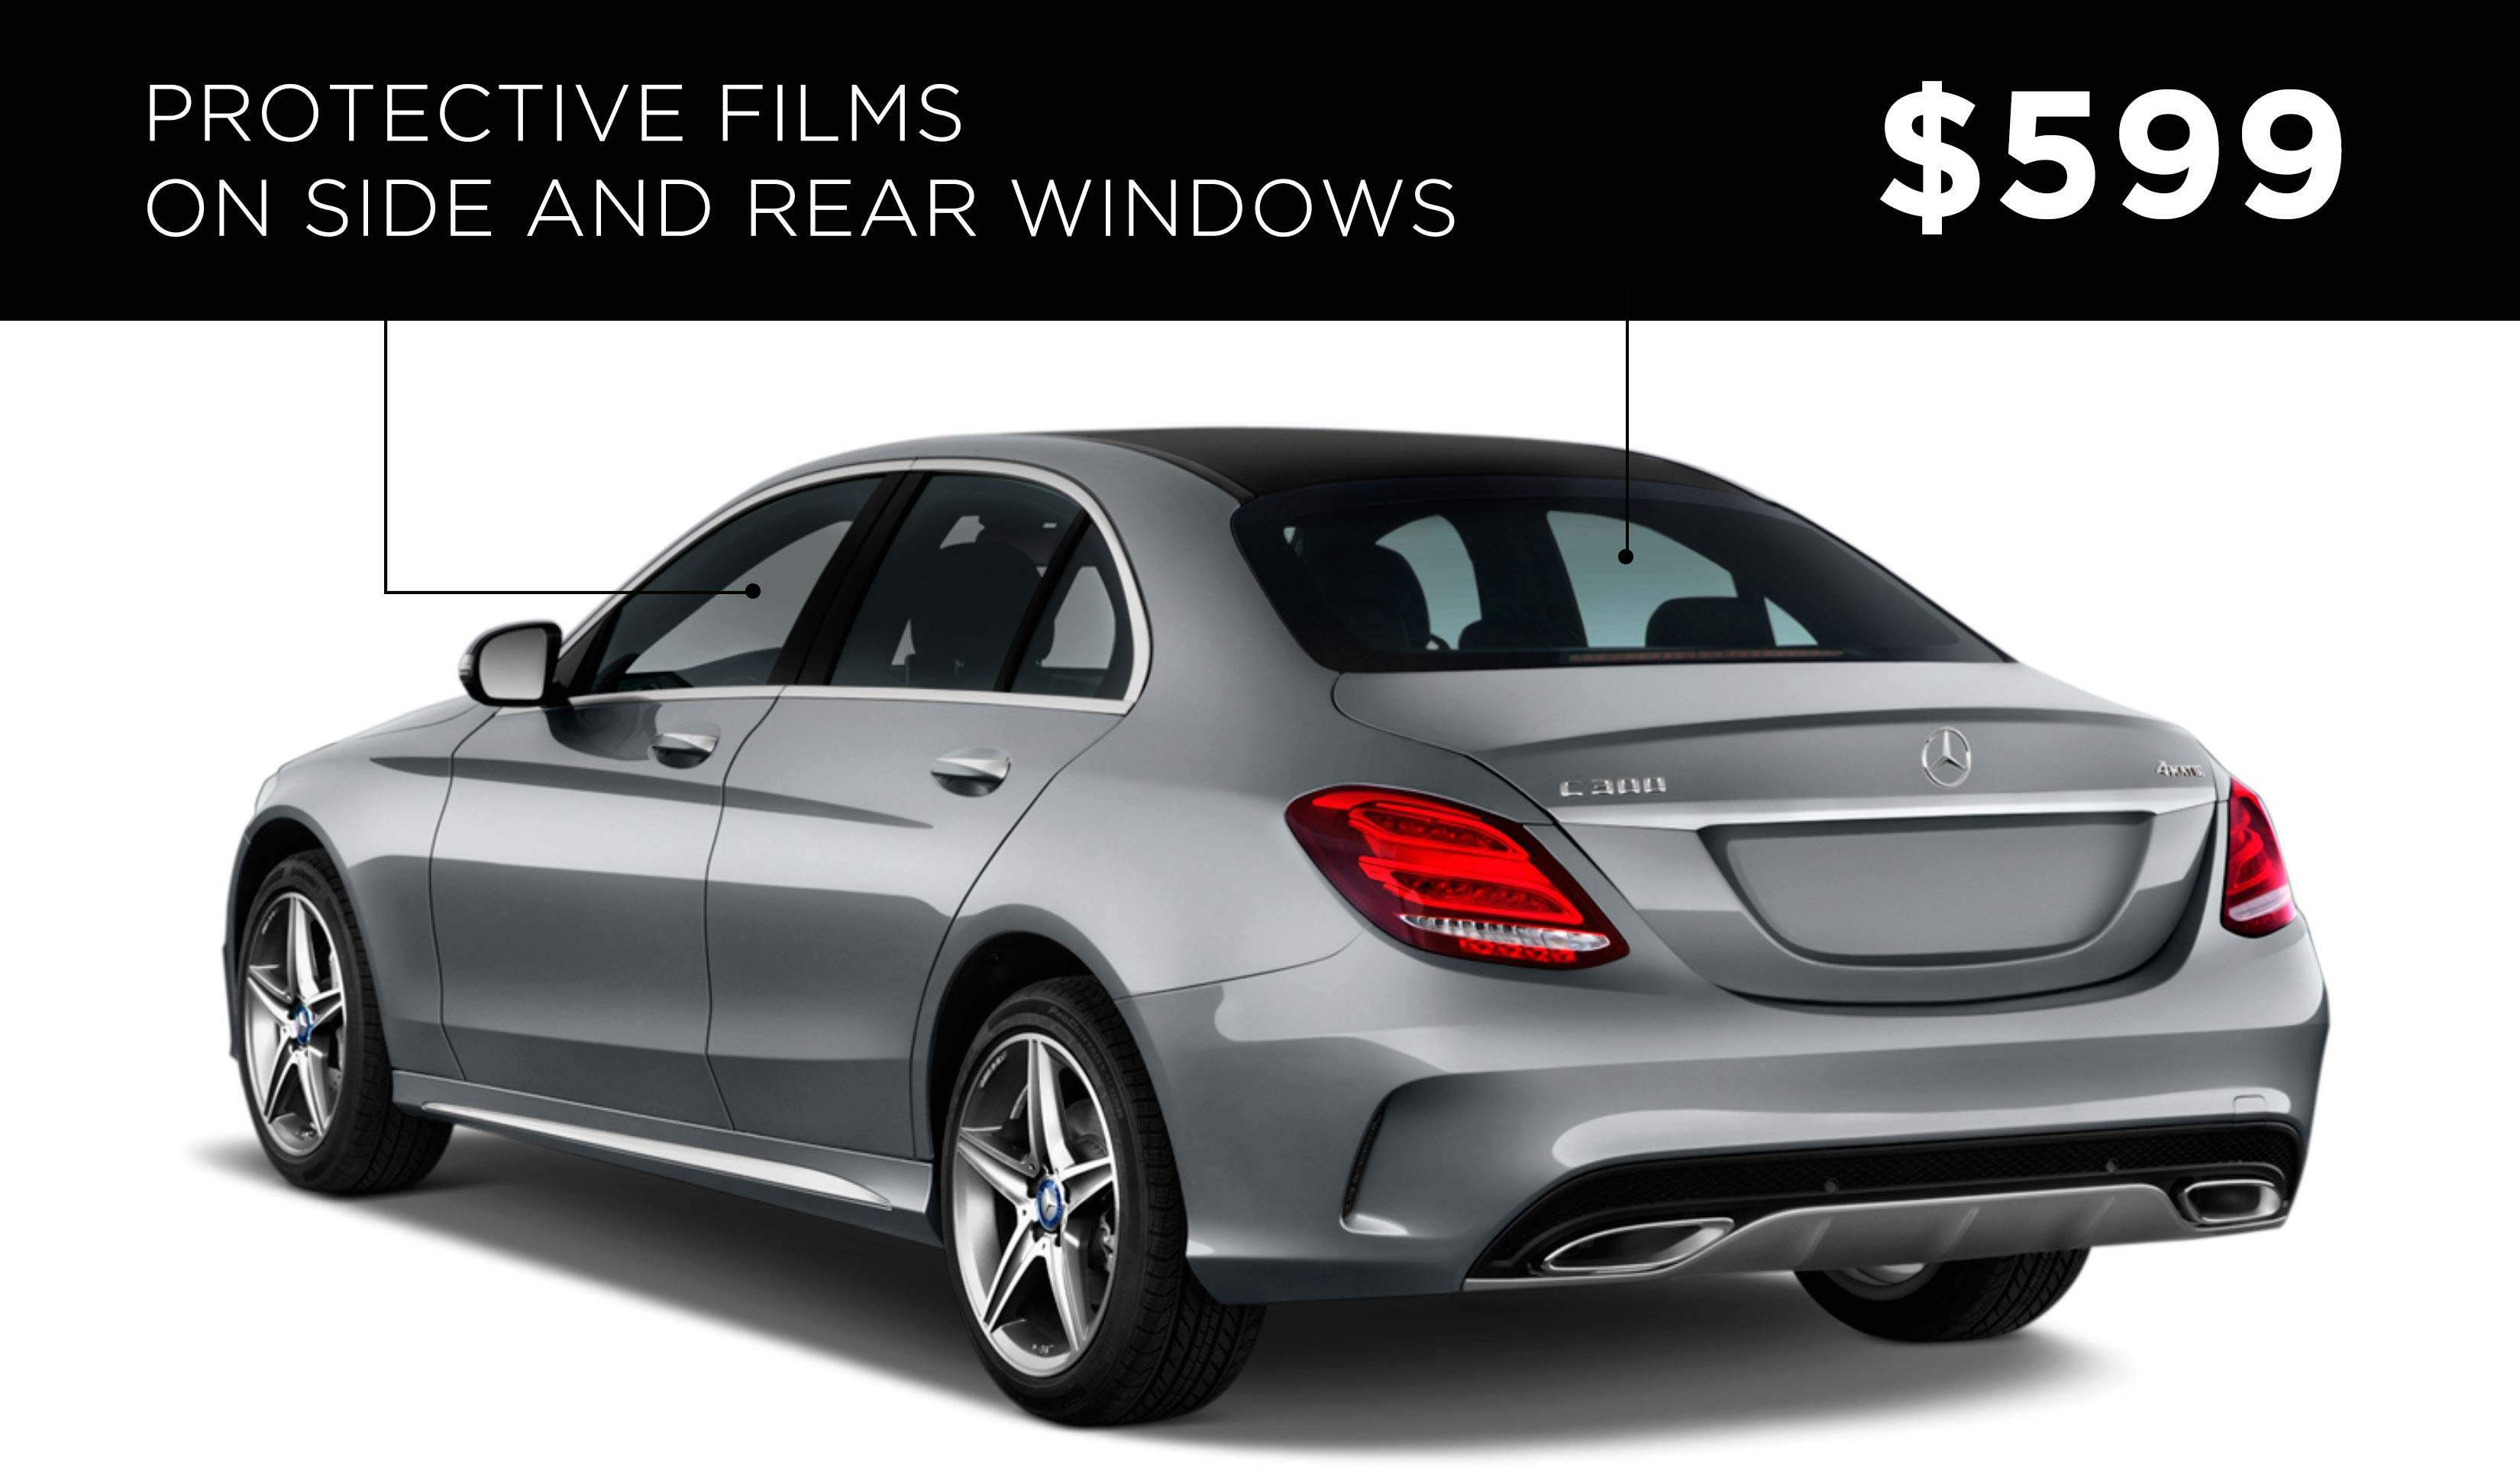 Protective Films on Side and Rear Windows